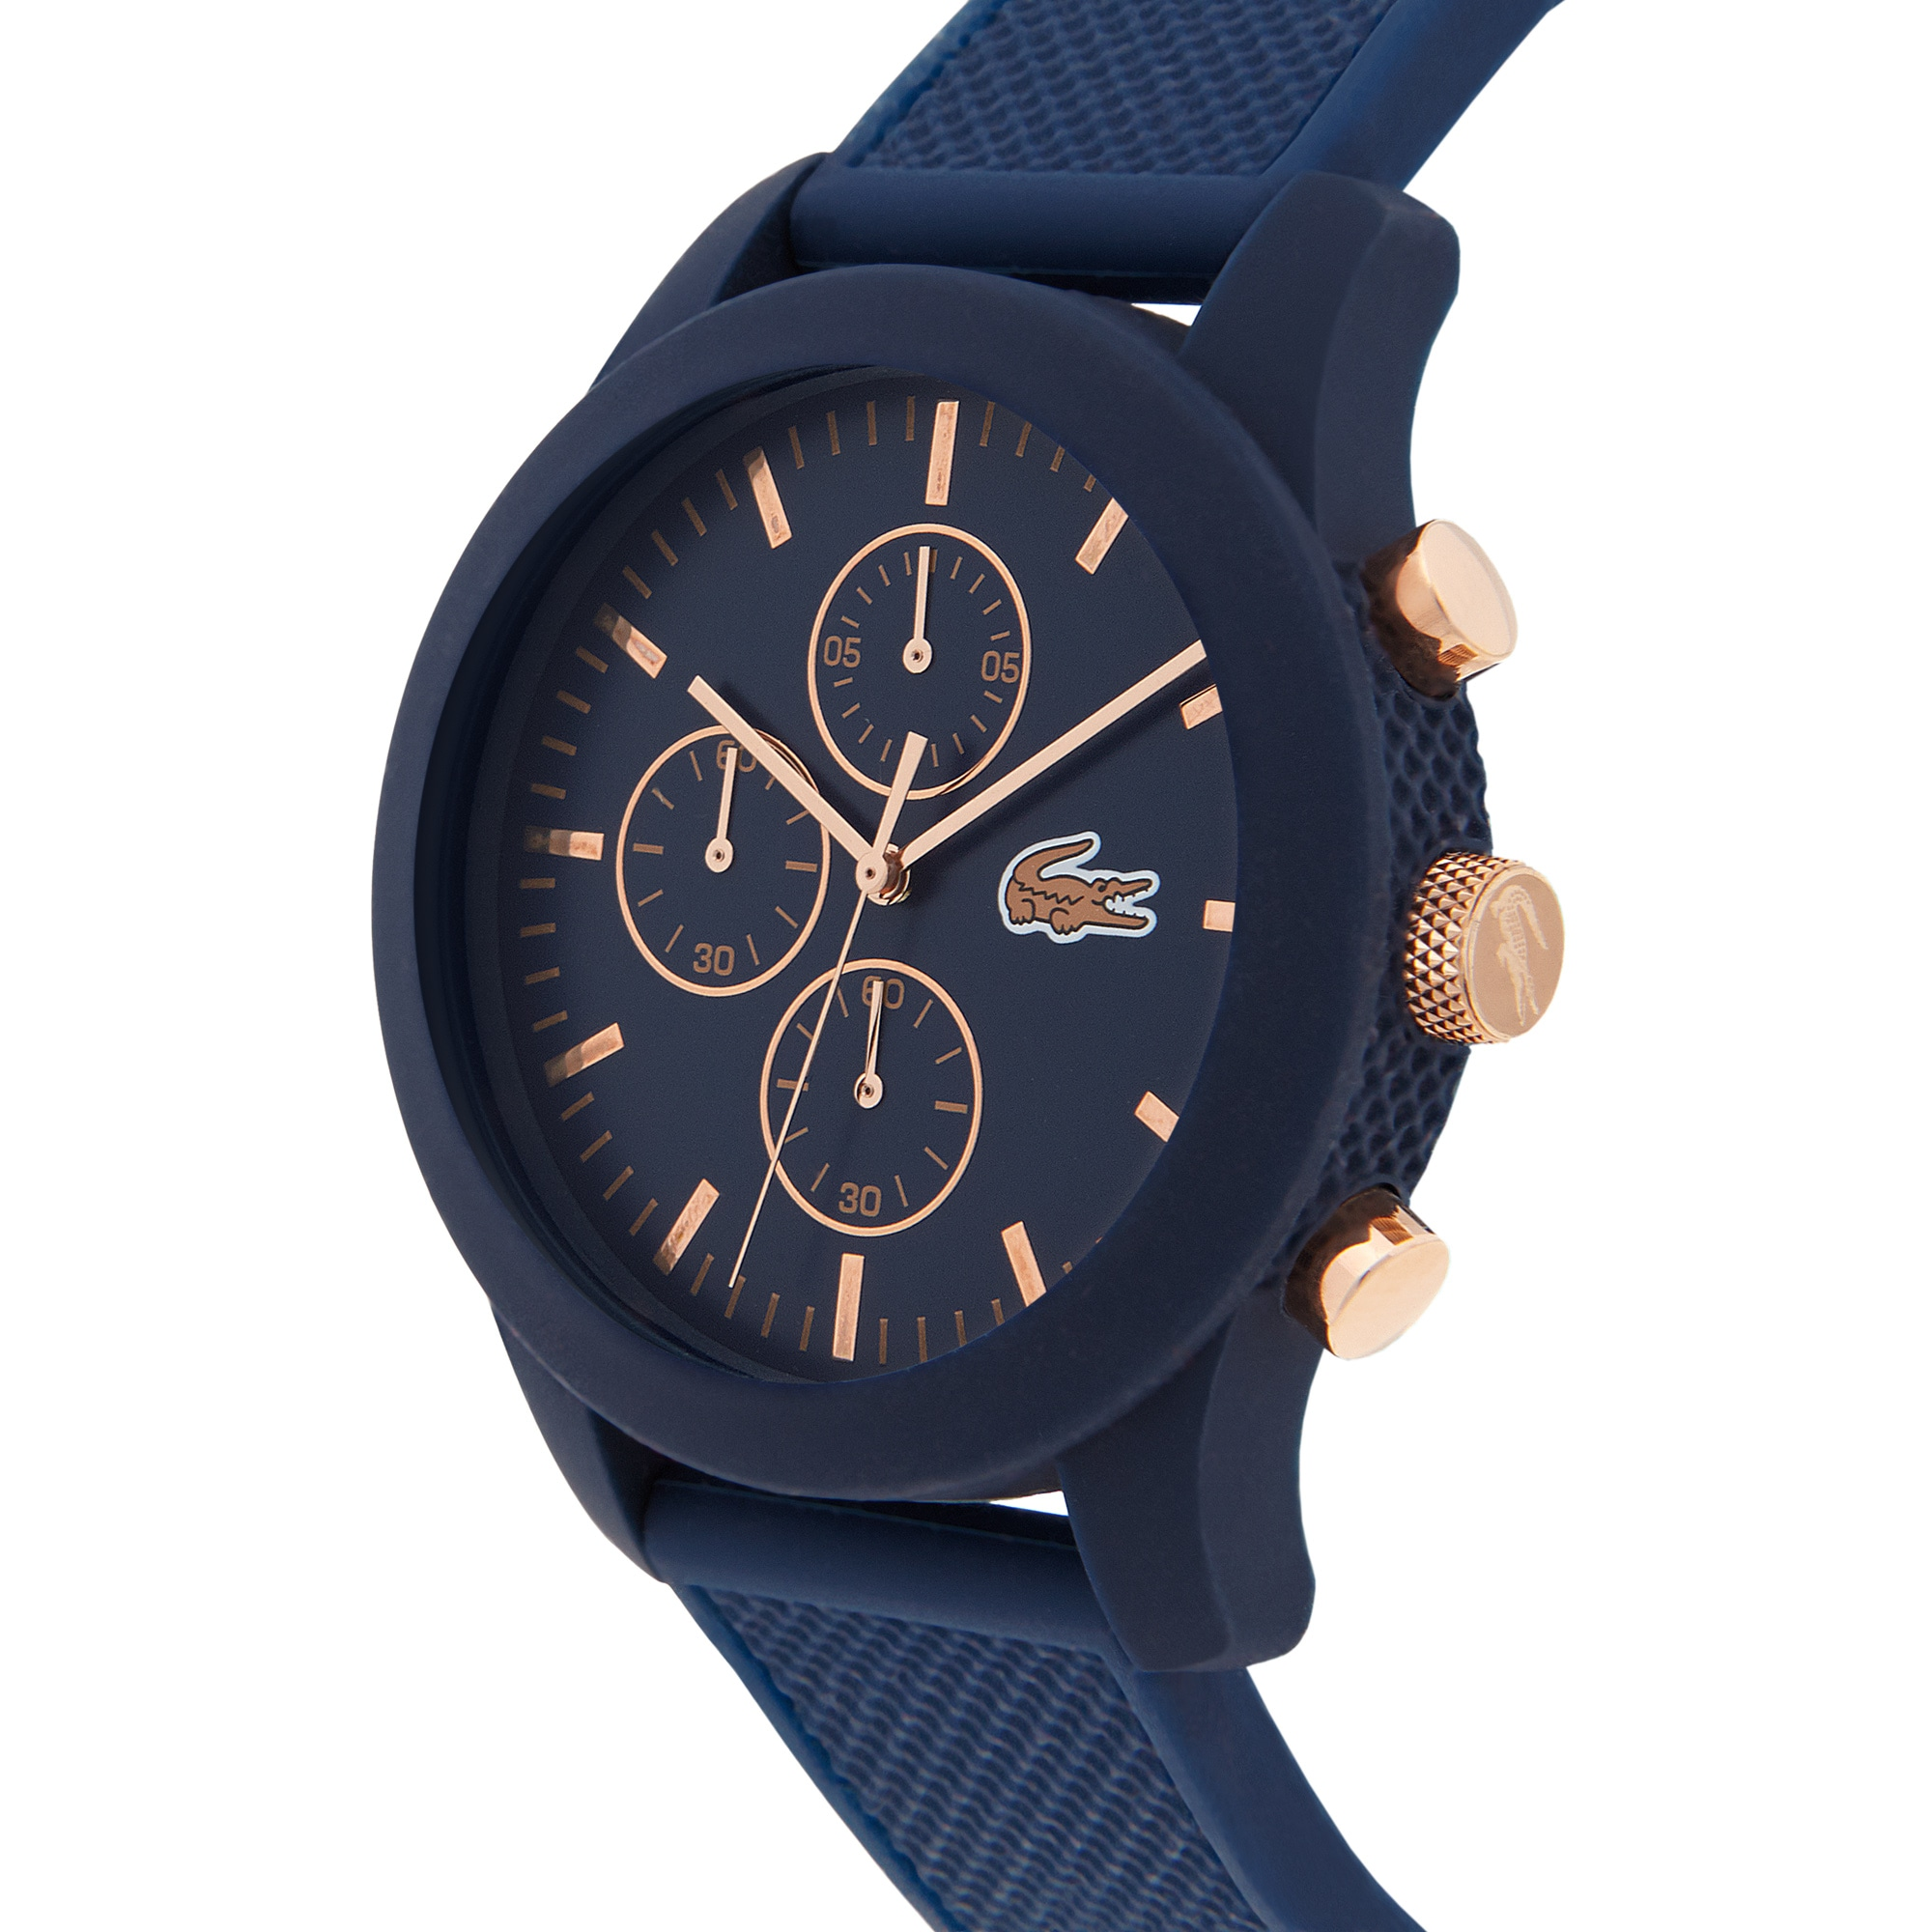 Lacoste.12.12 chronograph Watch - blue strap and red gold details